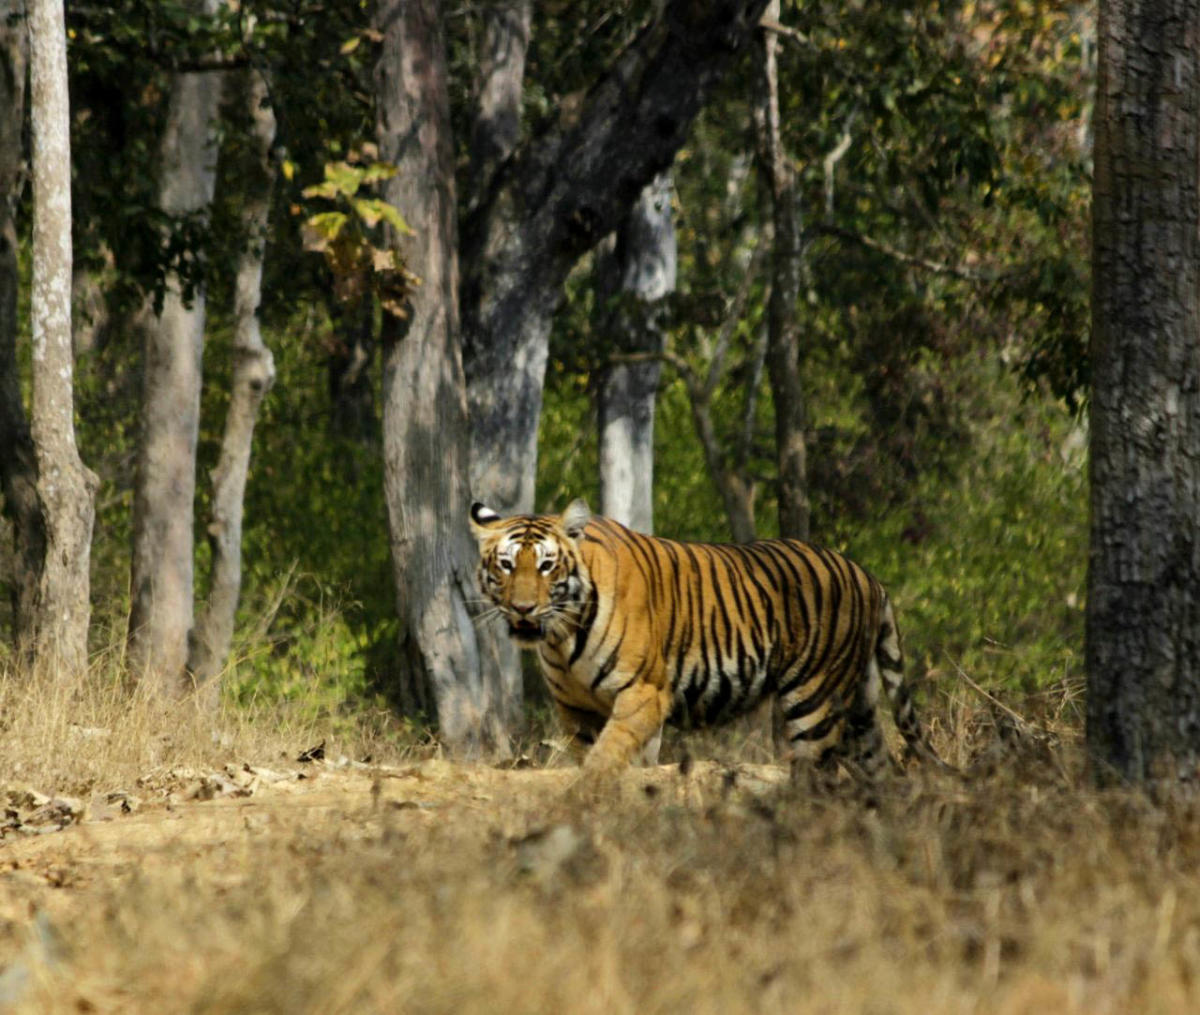 The court also asked the CBI to find out the involvement of forest officers in the poaching of tigers. The matter shall be inquired into and investigated by the CBI and the preliminary report shall be submitted to this court, in sealed cover, within three